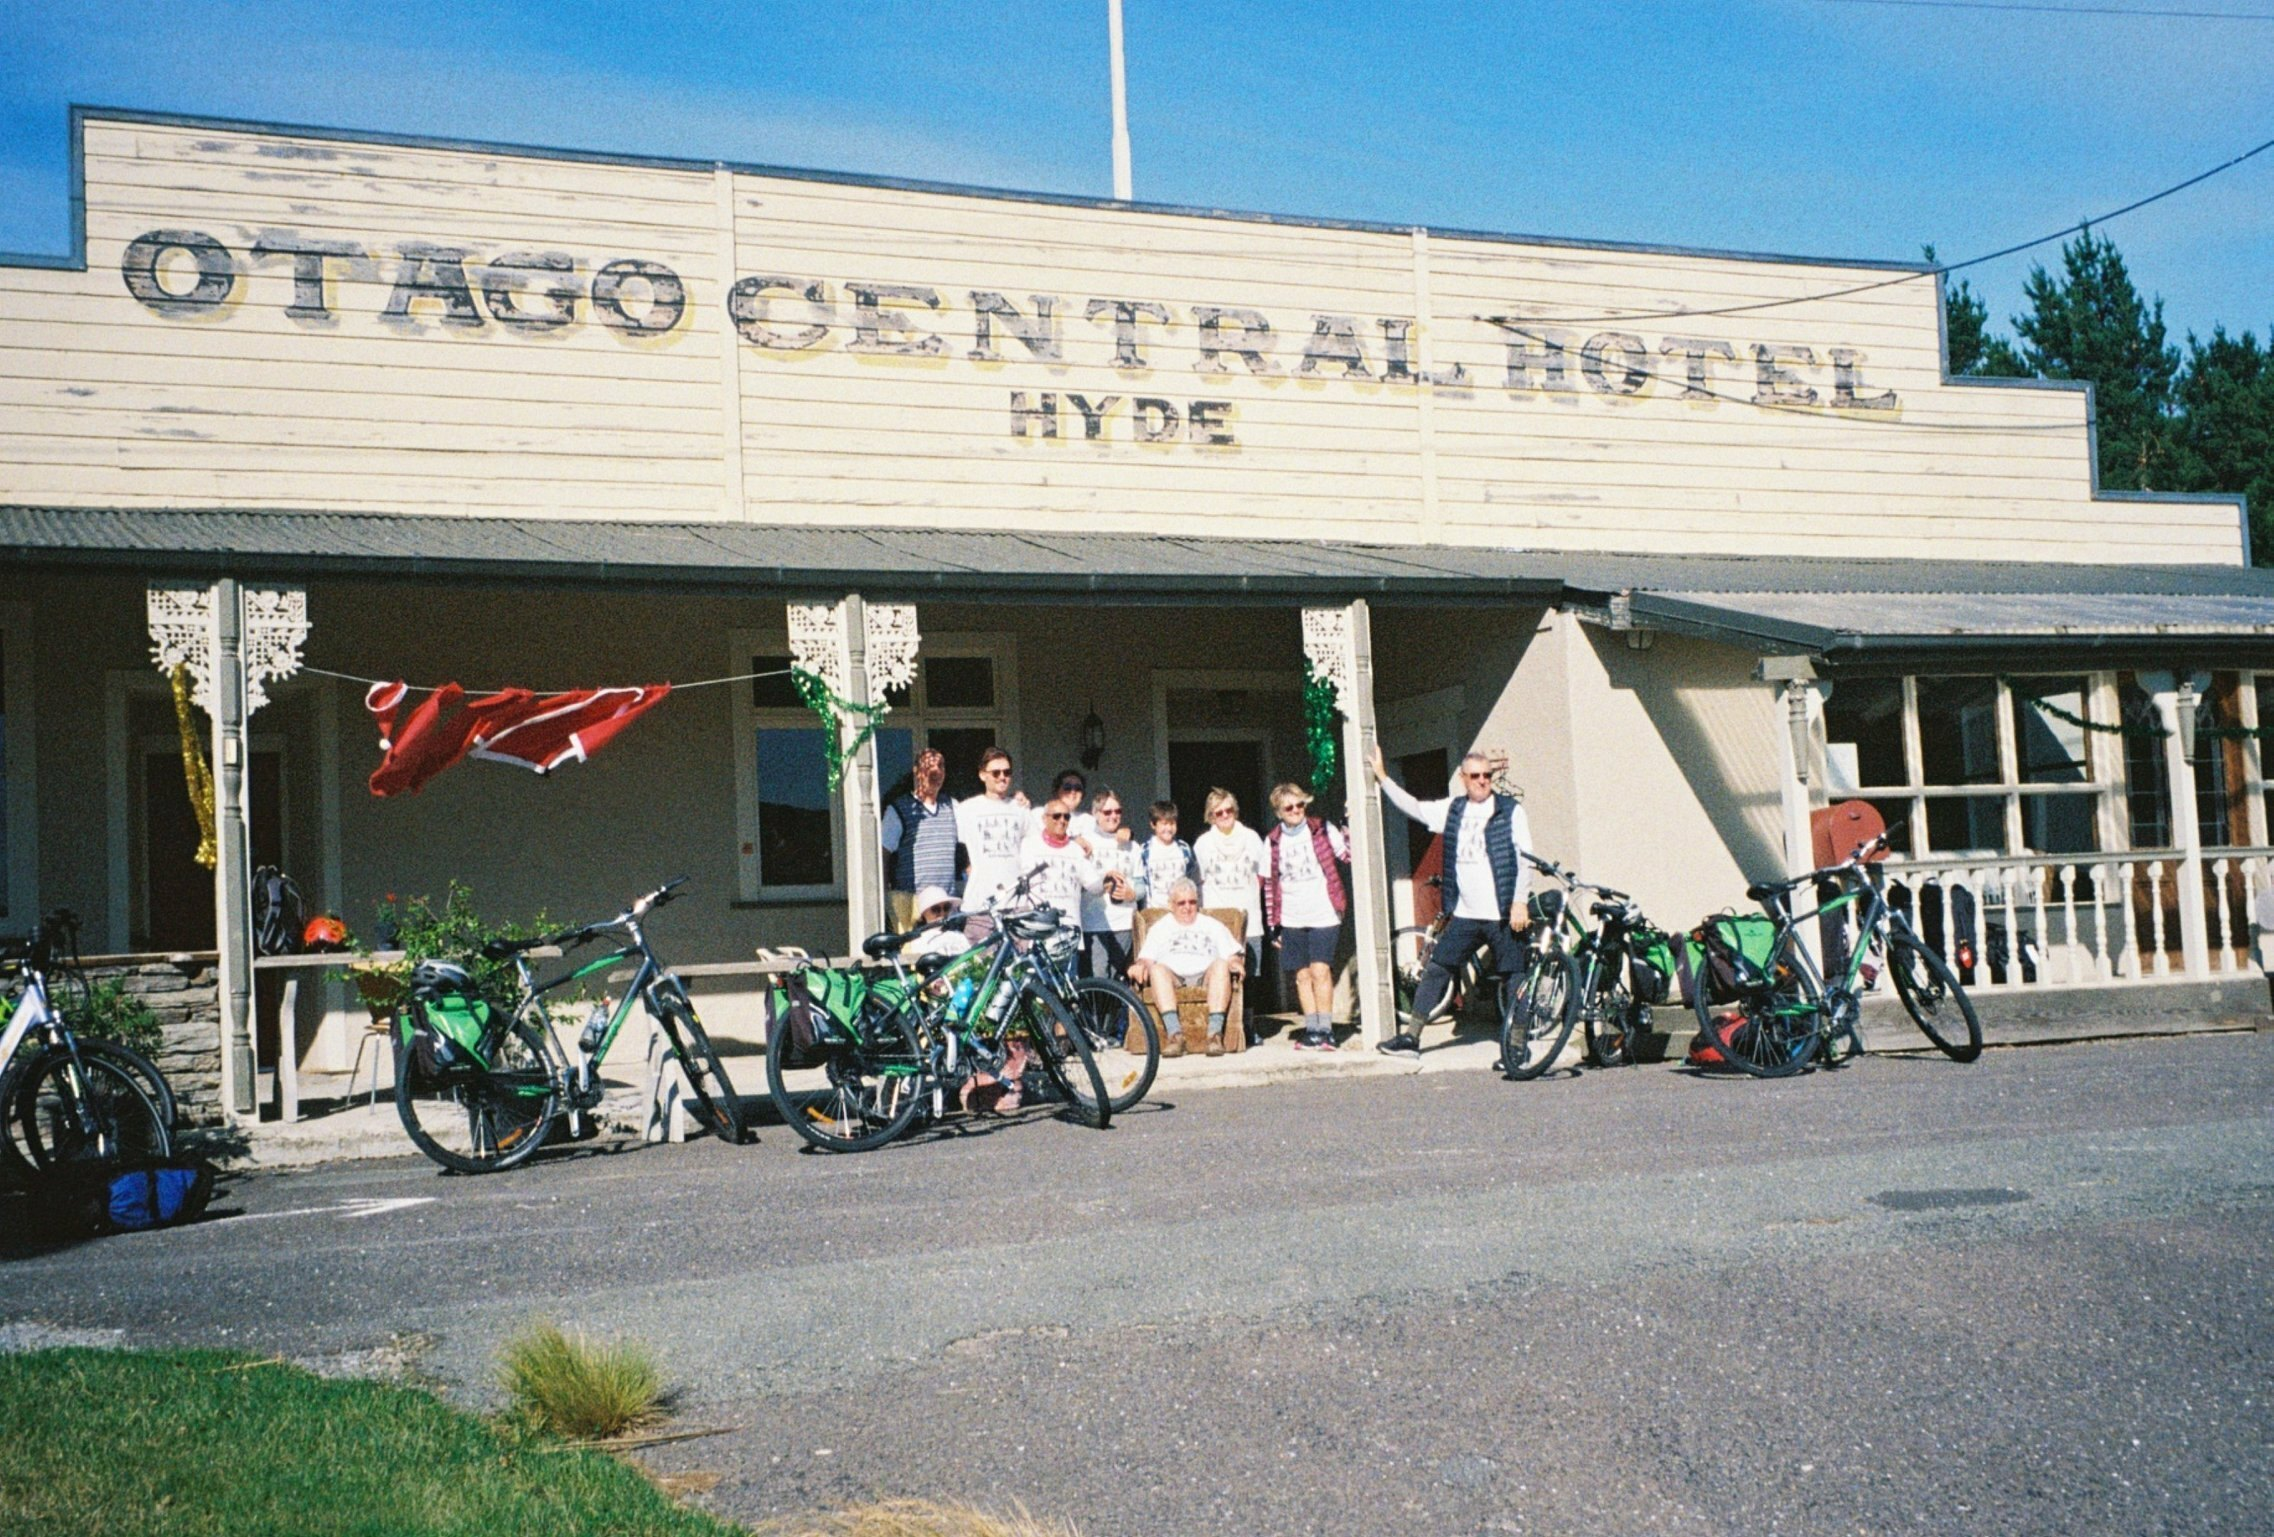 The Otago Central Hotel in Hyde, on the Central Otago Rail Trail